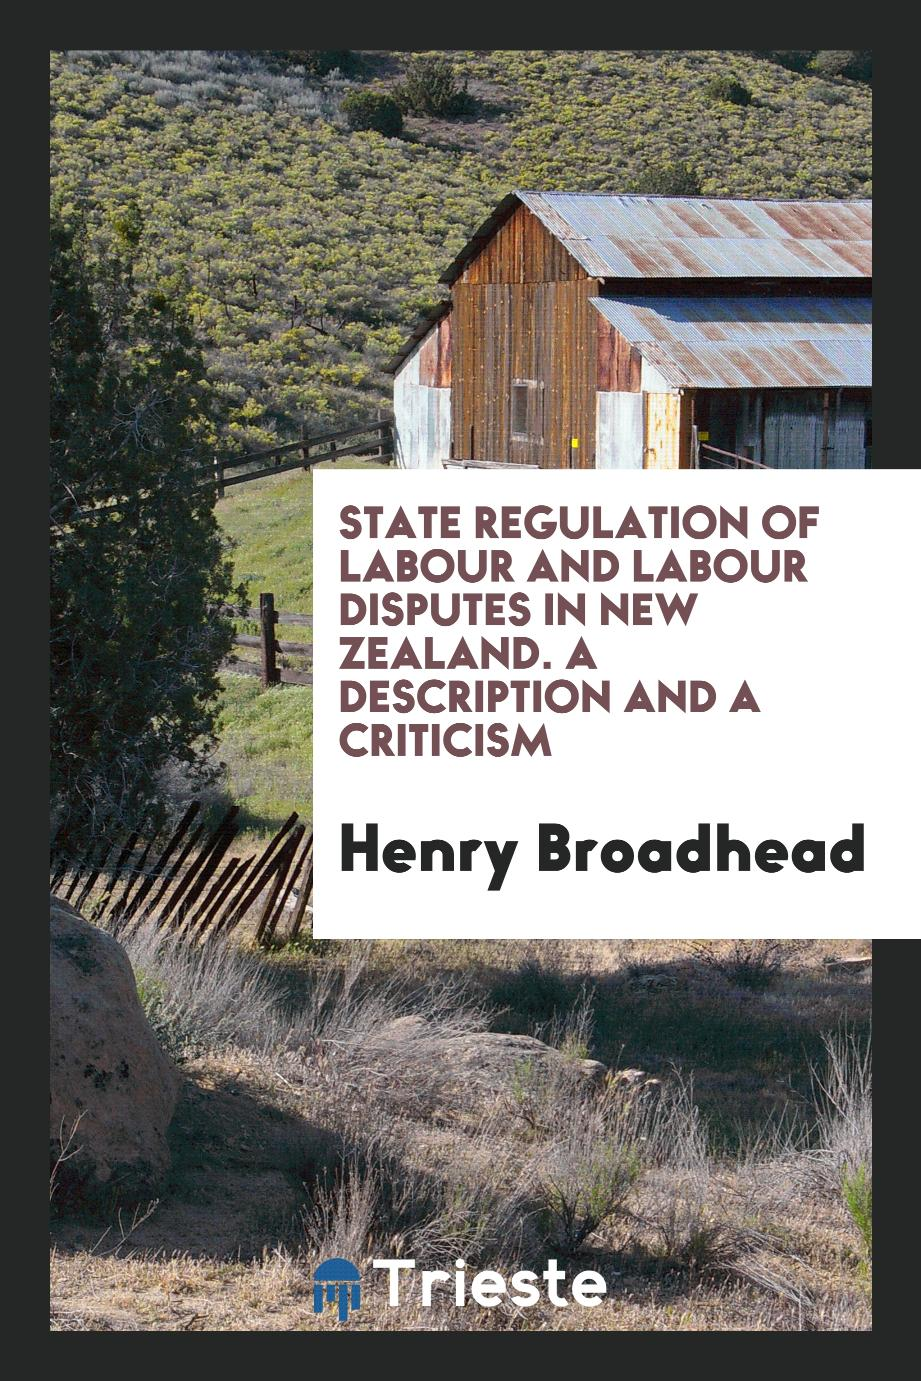 State regulation of labour and labour disputes in New Zealand. A description and a criticism